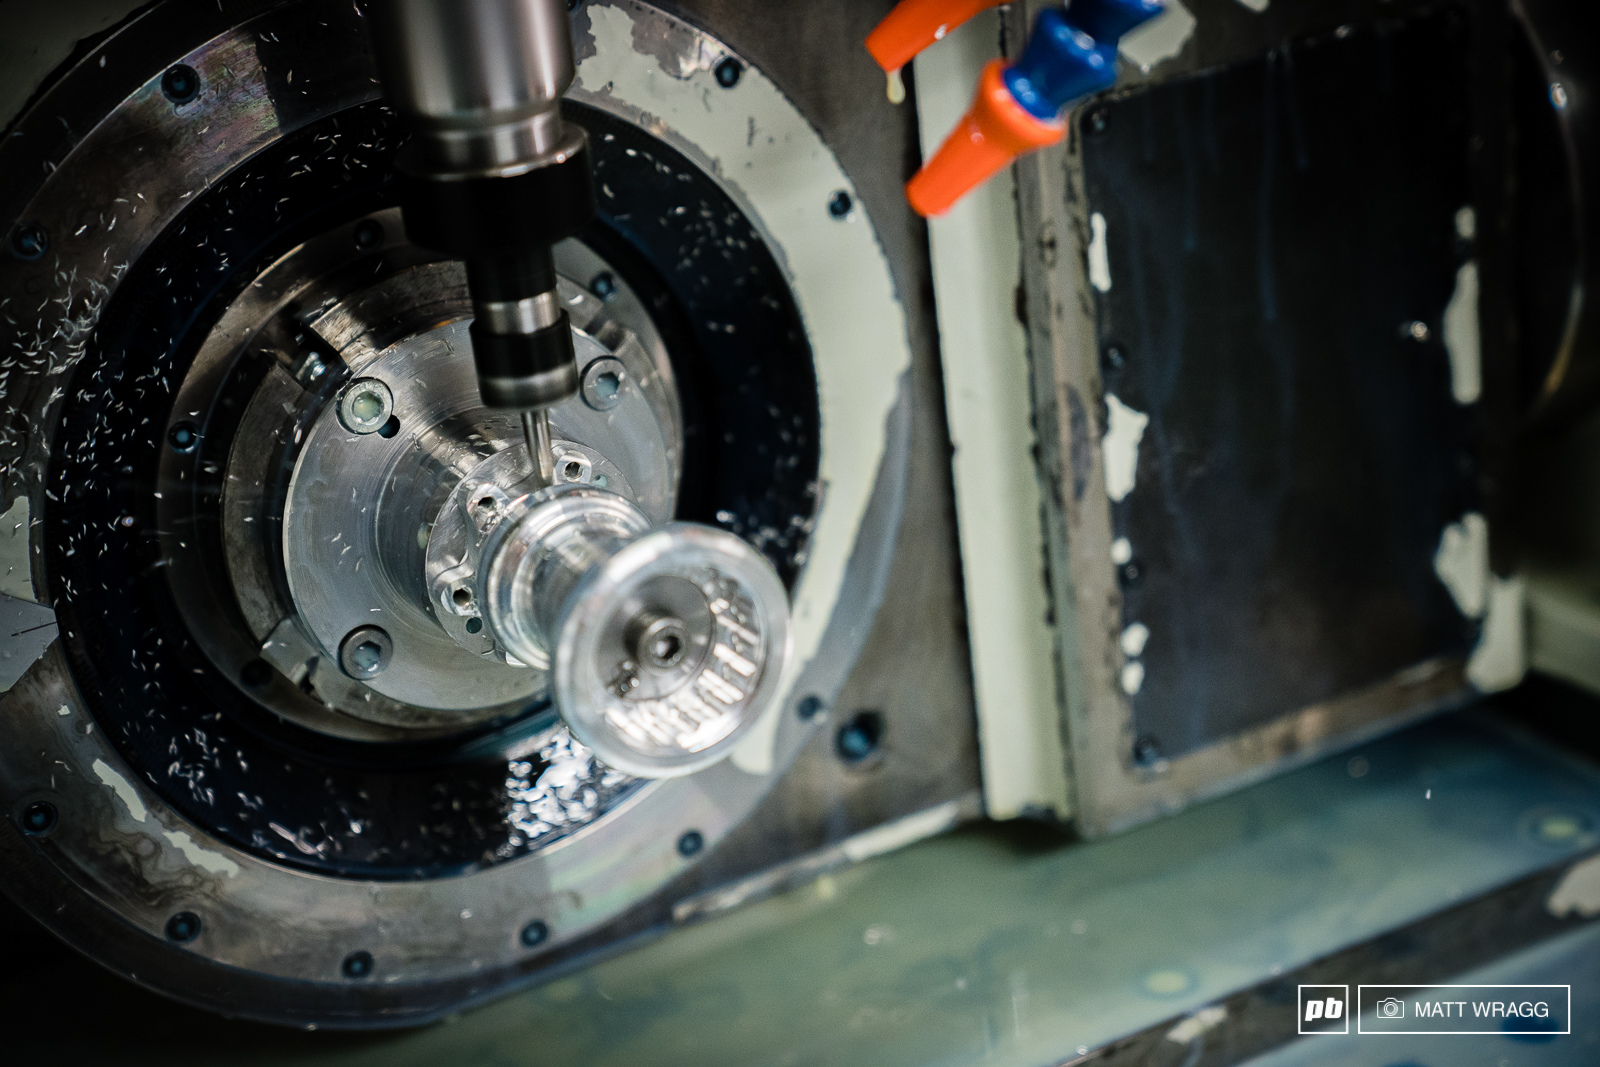 The second machining is for the fine detail and precision removing any excess material.